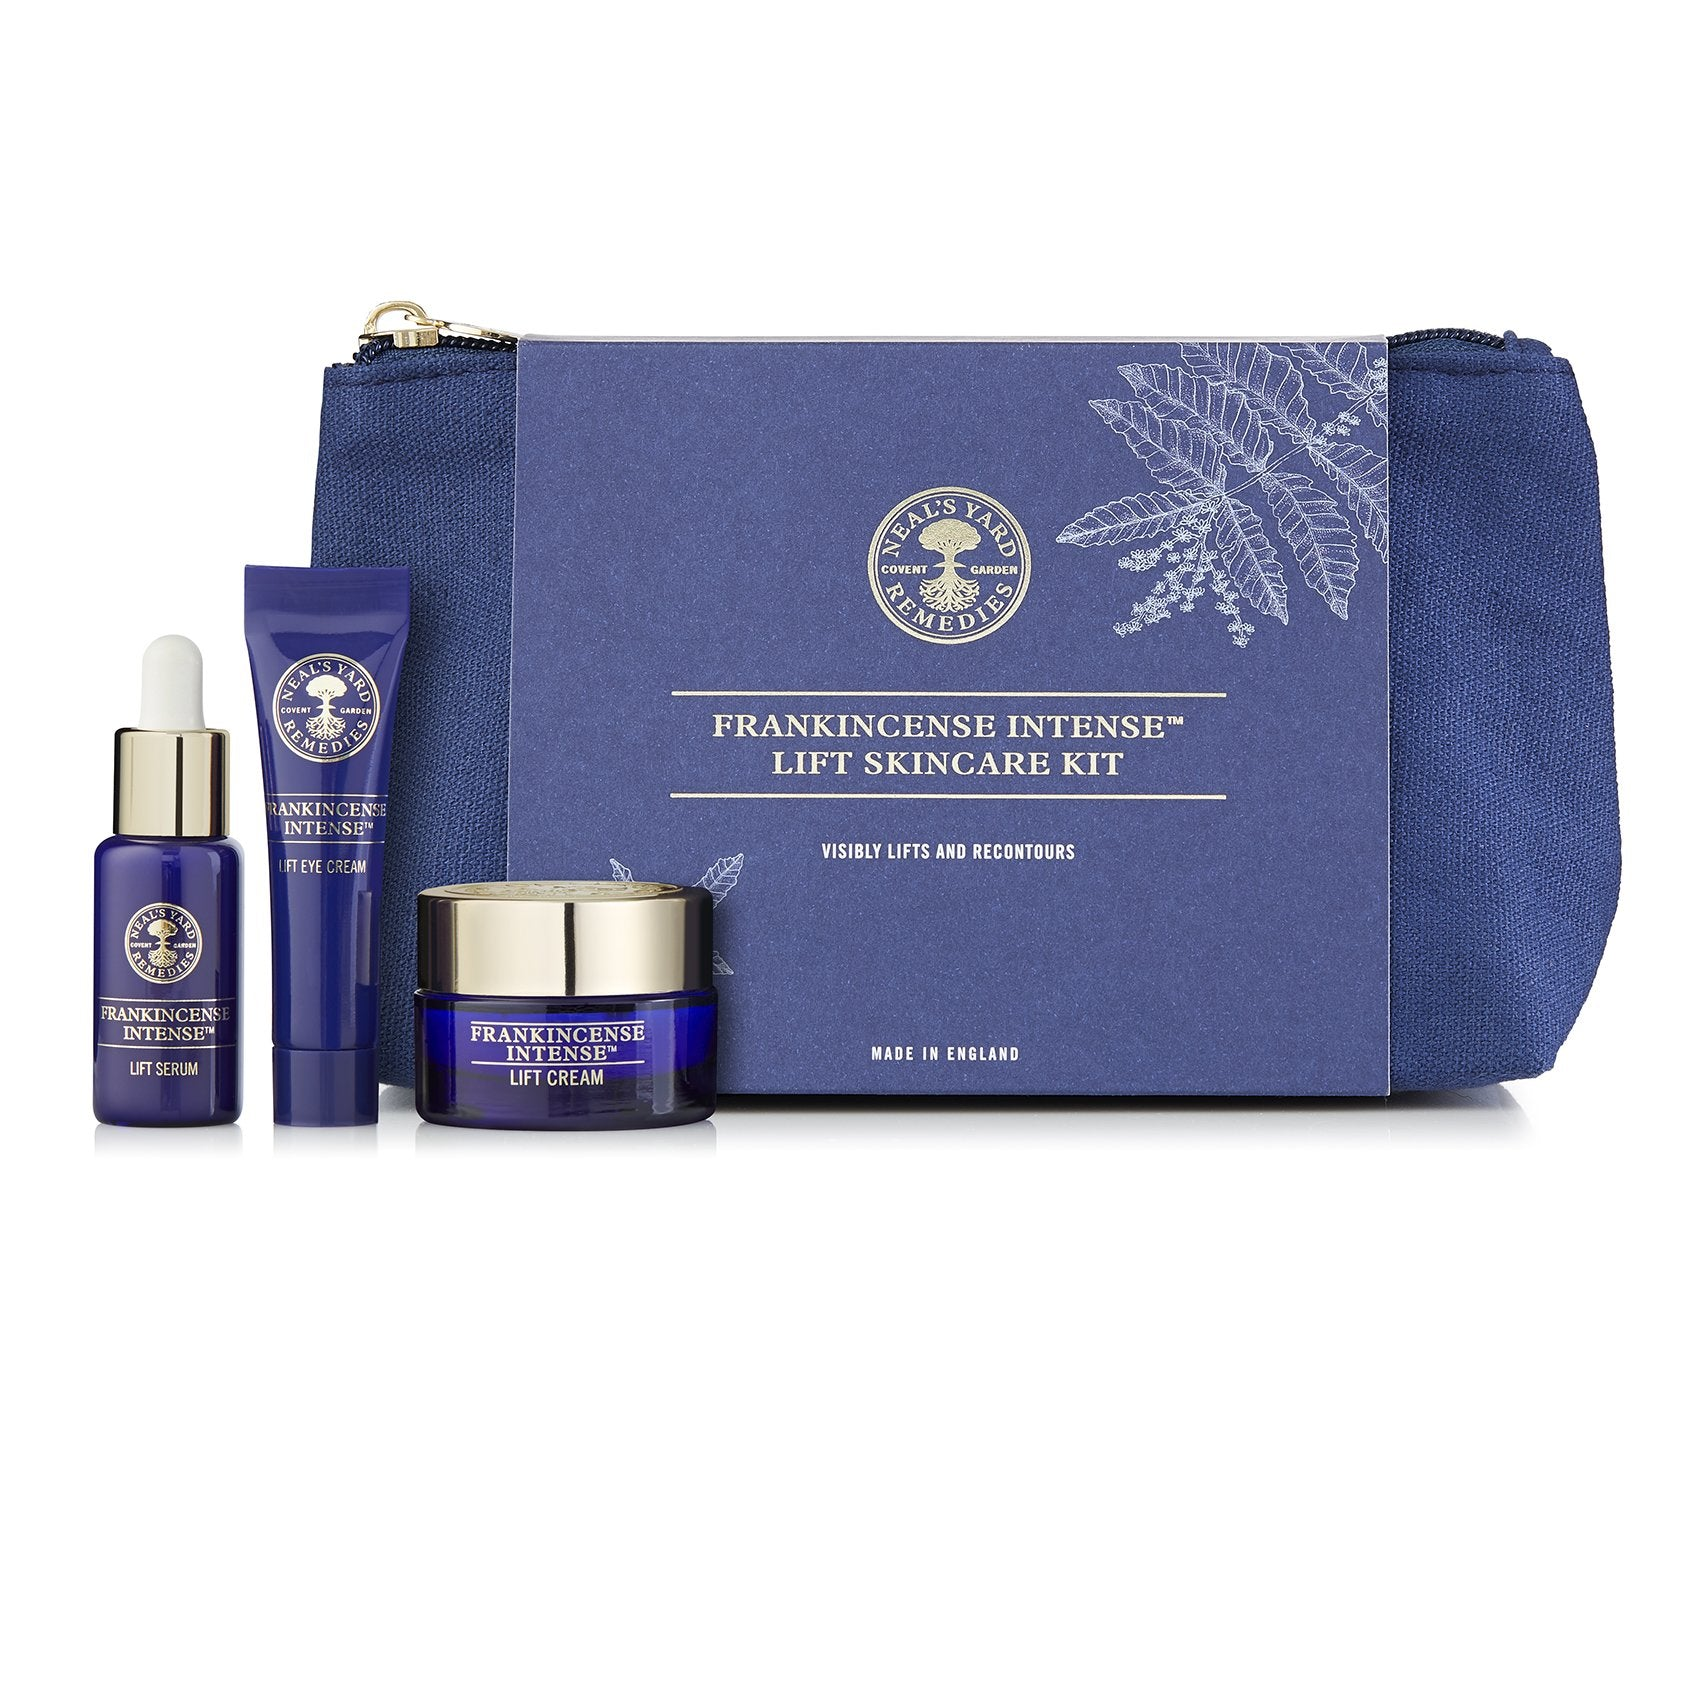 Frankincense Intense Lift Skincare Kit